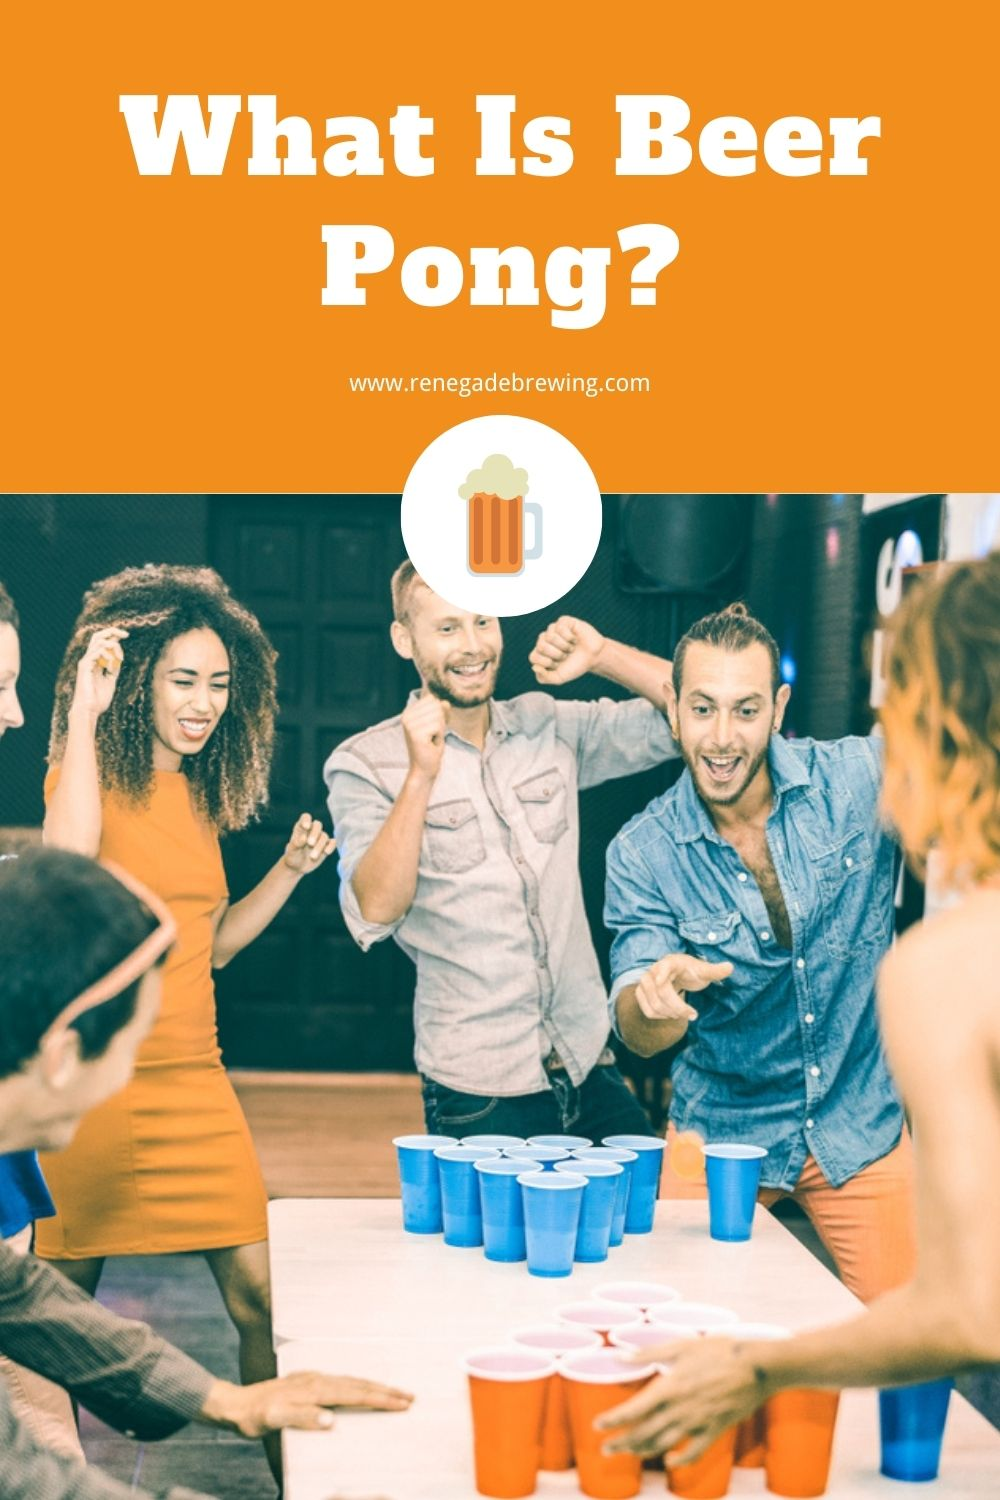 What Is Beer Pong (History, Rules & Tricks) 2